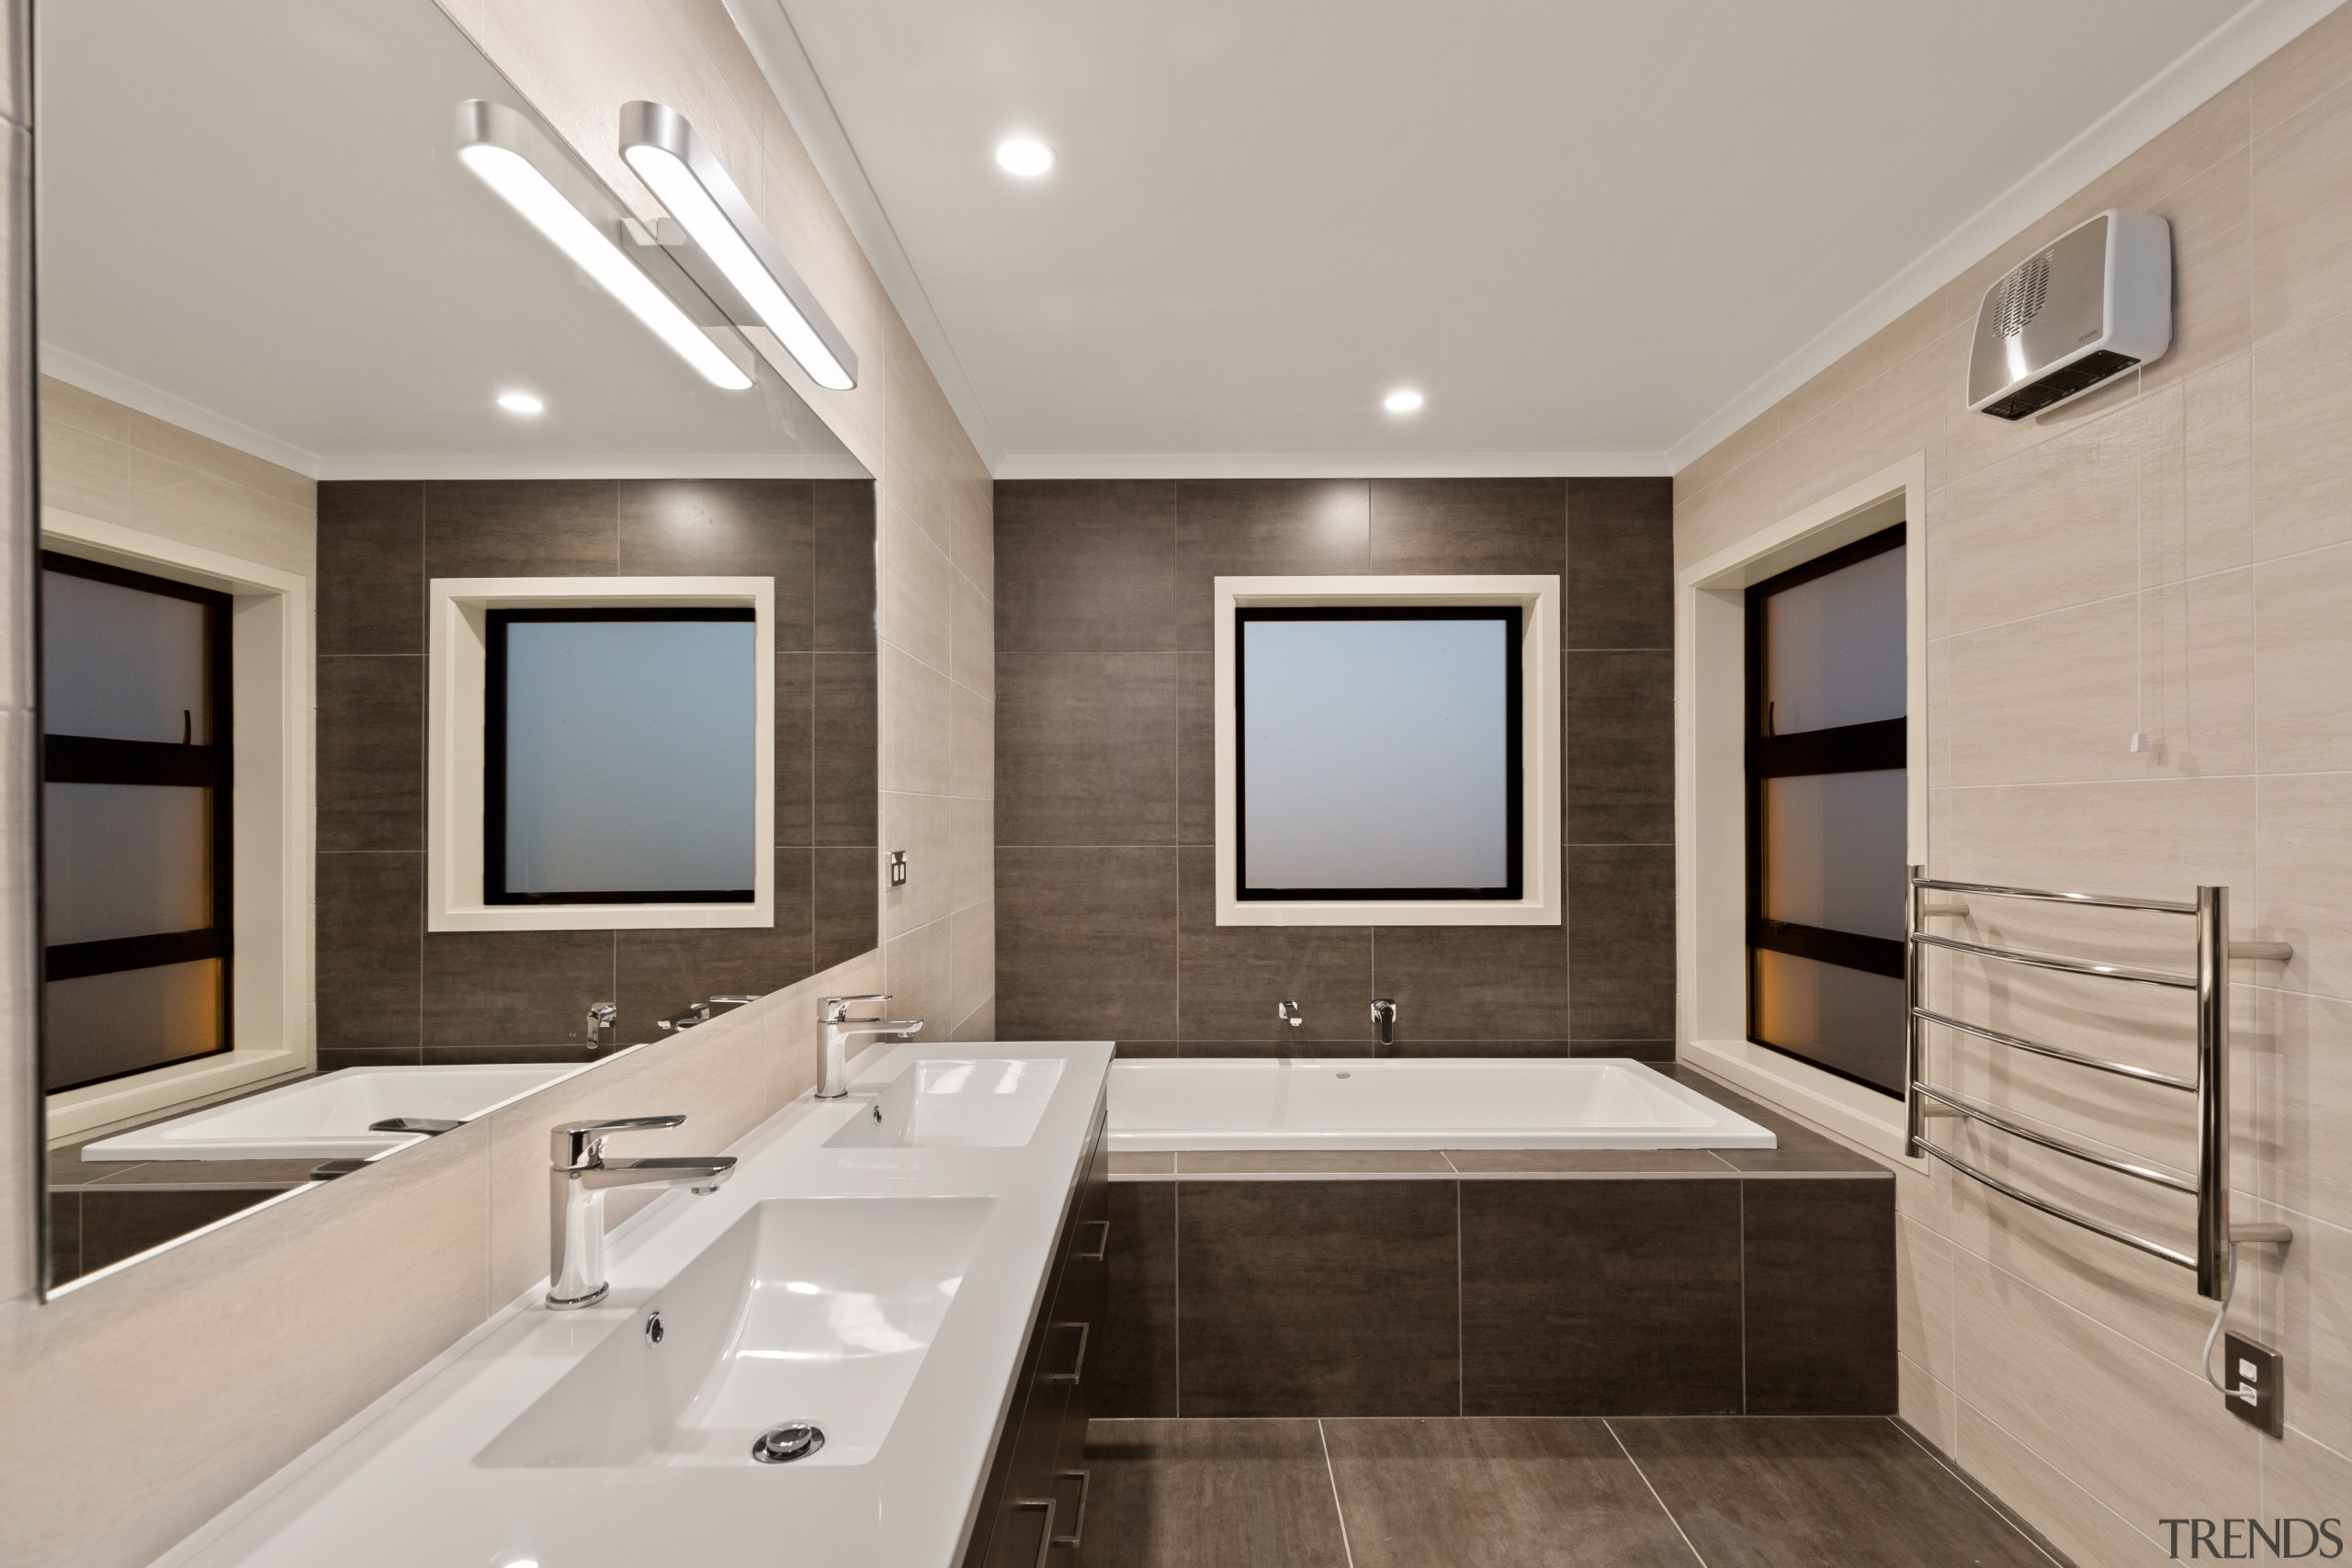 Natural tones and refined surfaces are features of architecture, bathroom, bathtub, building, ceiling, floor, furniture, home, house, interior design, plumbing fixture, property, real estate, room, sink, tap, tile, gray